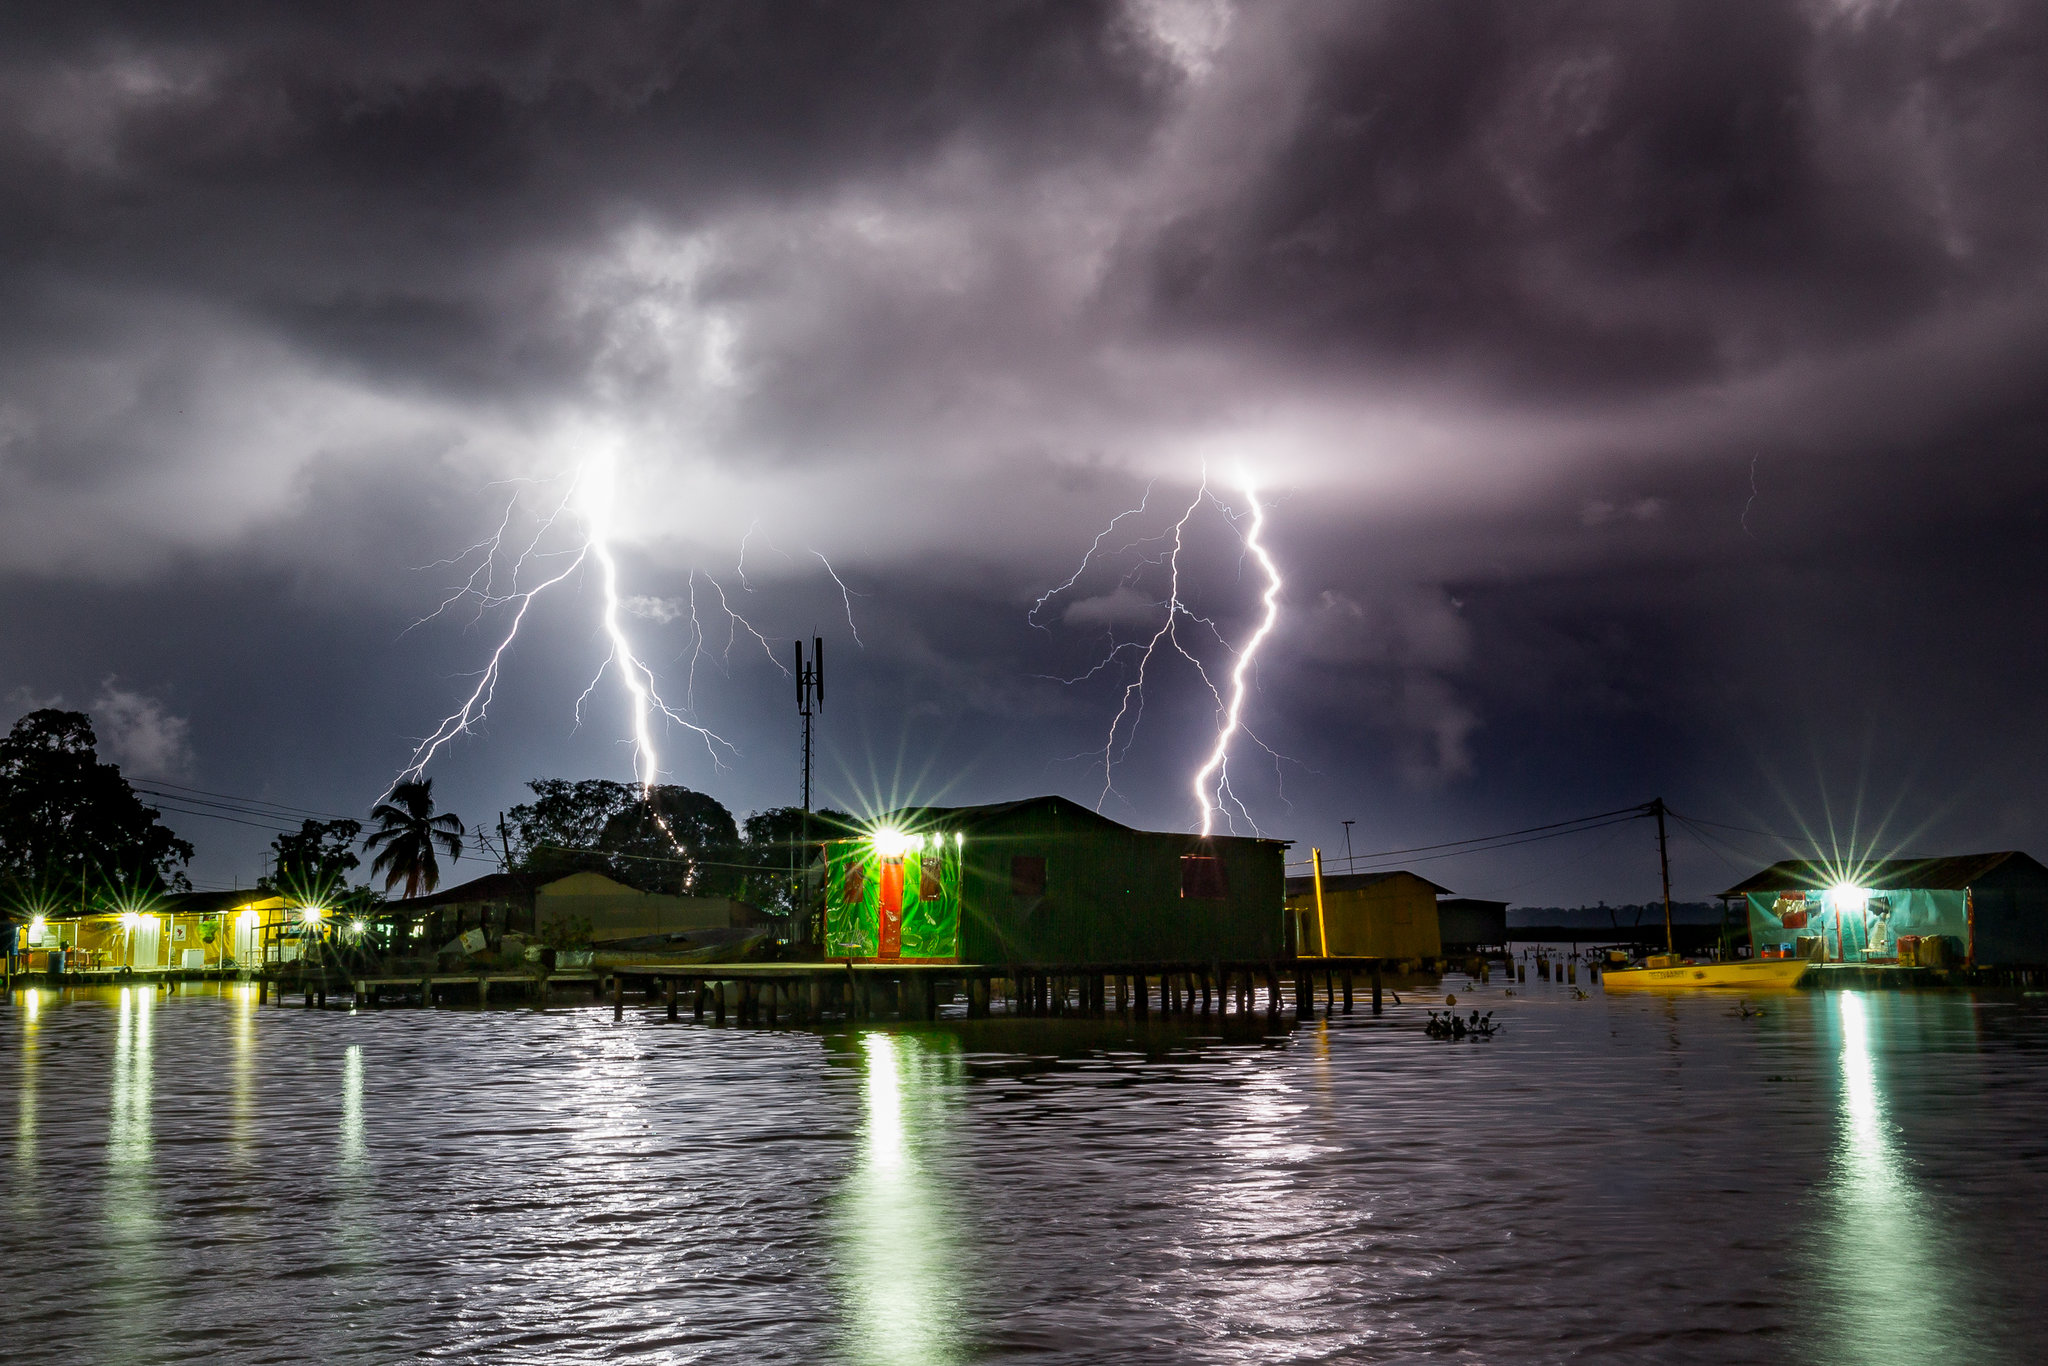 a place where lightning strikes almost